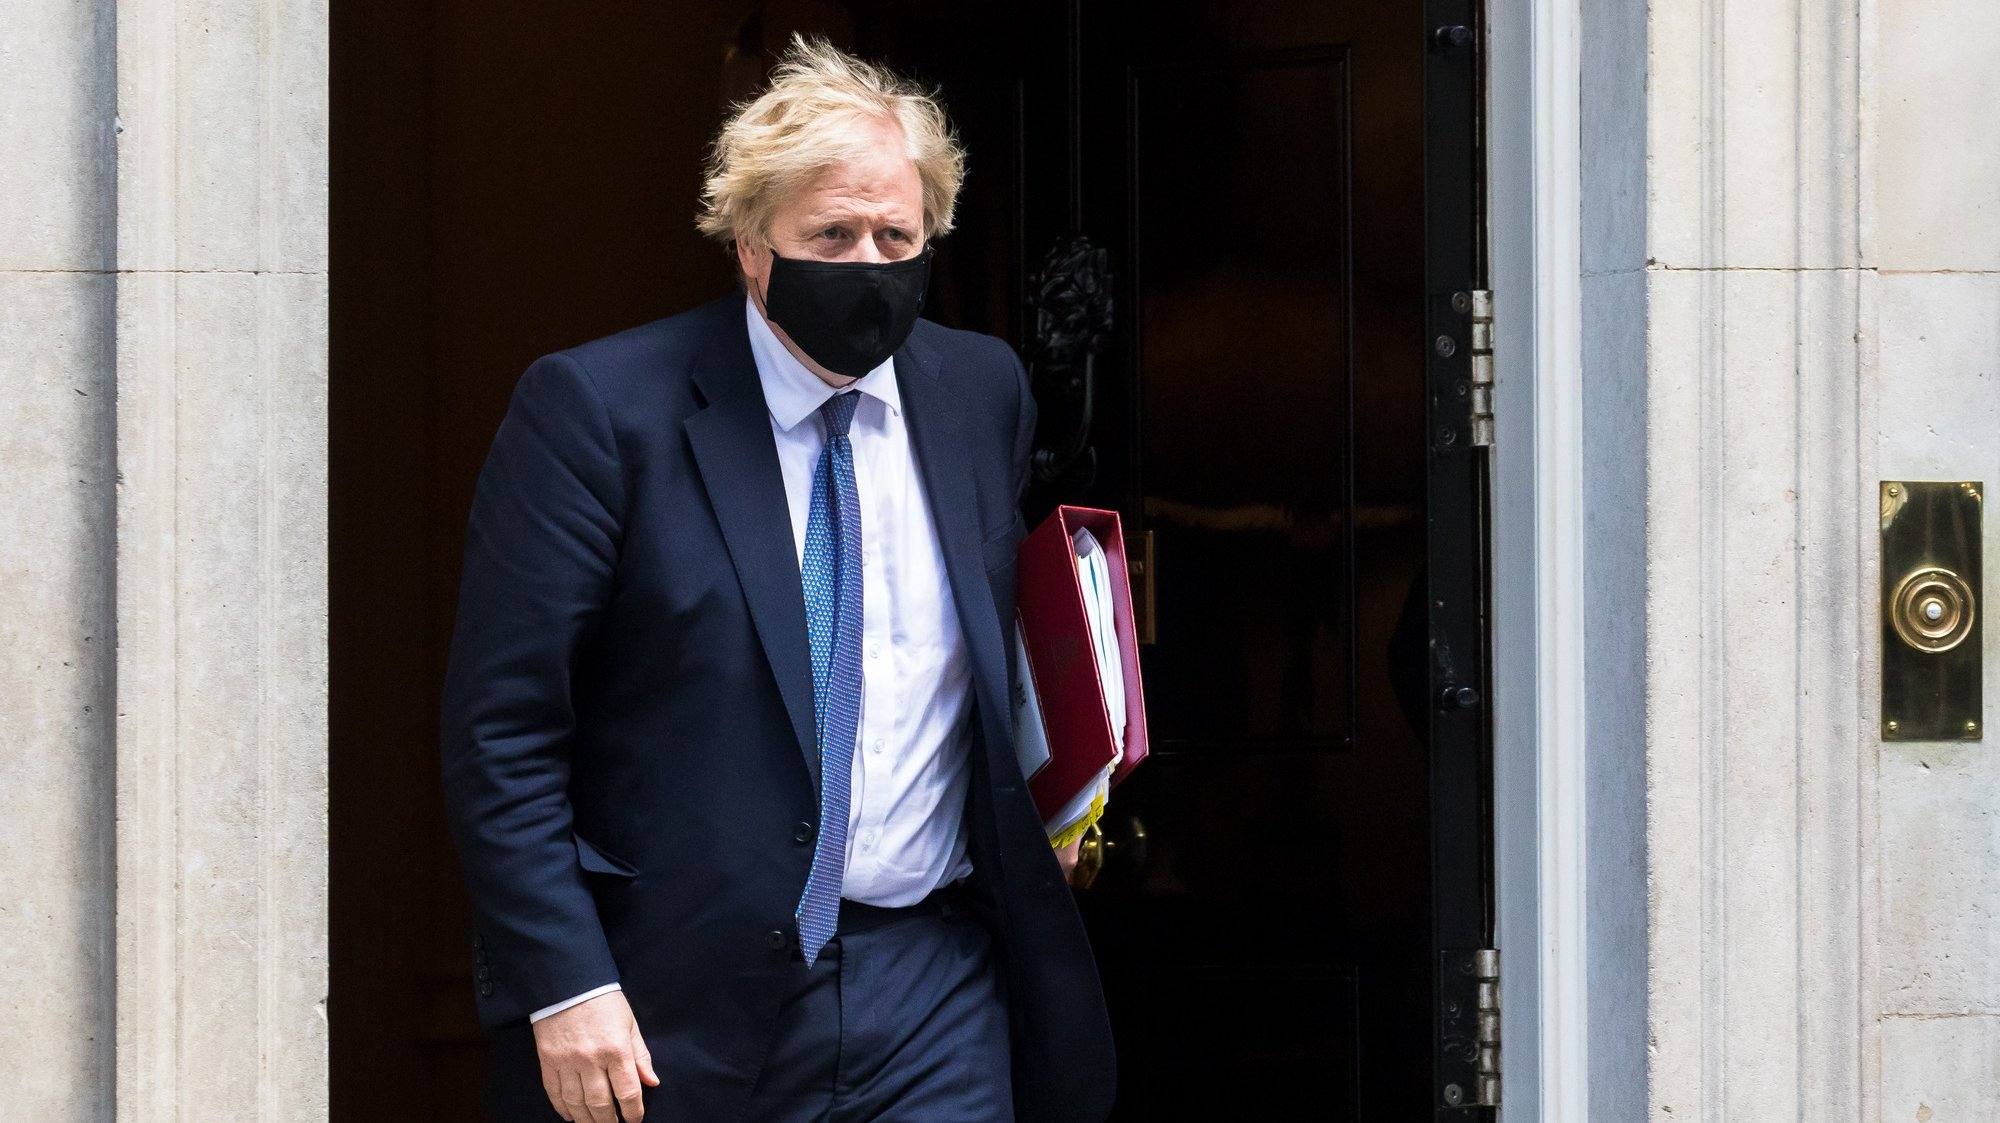 epa09211359 British Prime Minister Boris Johnson departs 10 Downing Street for Prime Minister Questions at parliament in London, Britain, 19 May 2021. Johnson faces the MPs' weekly question time in the House of Commons.  EPA/VICKIE FLORES